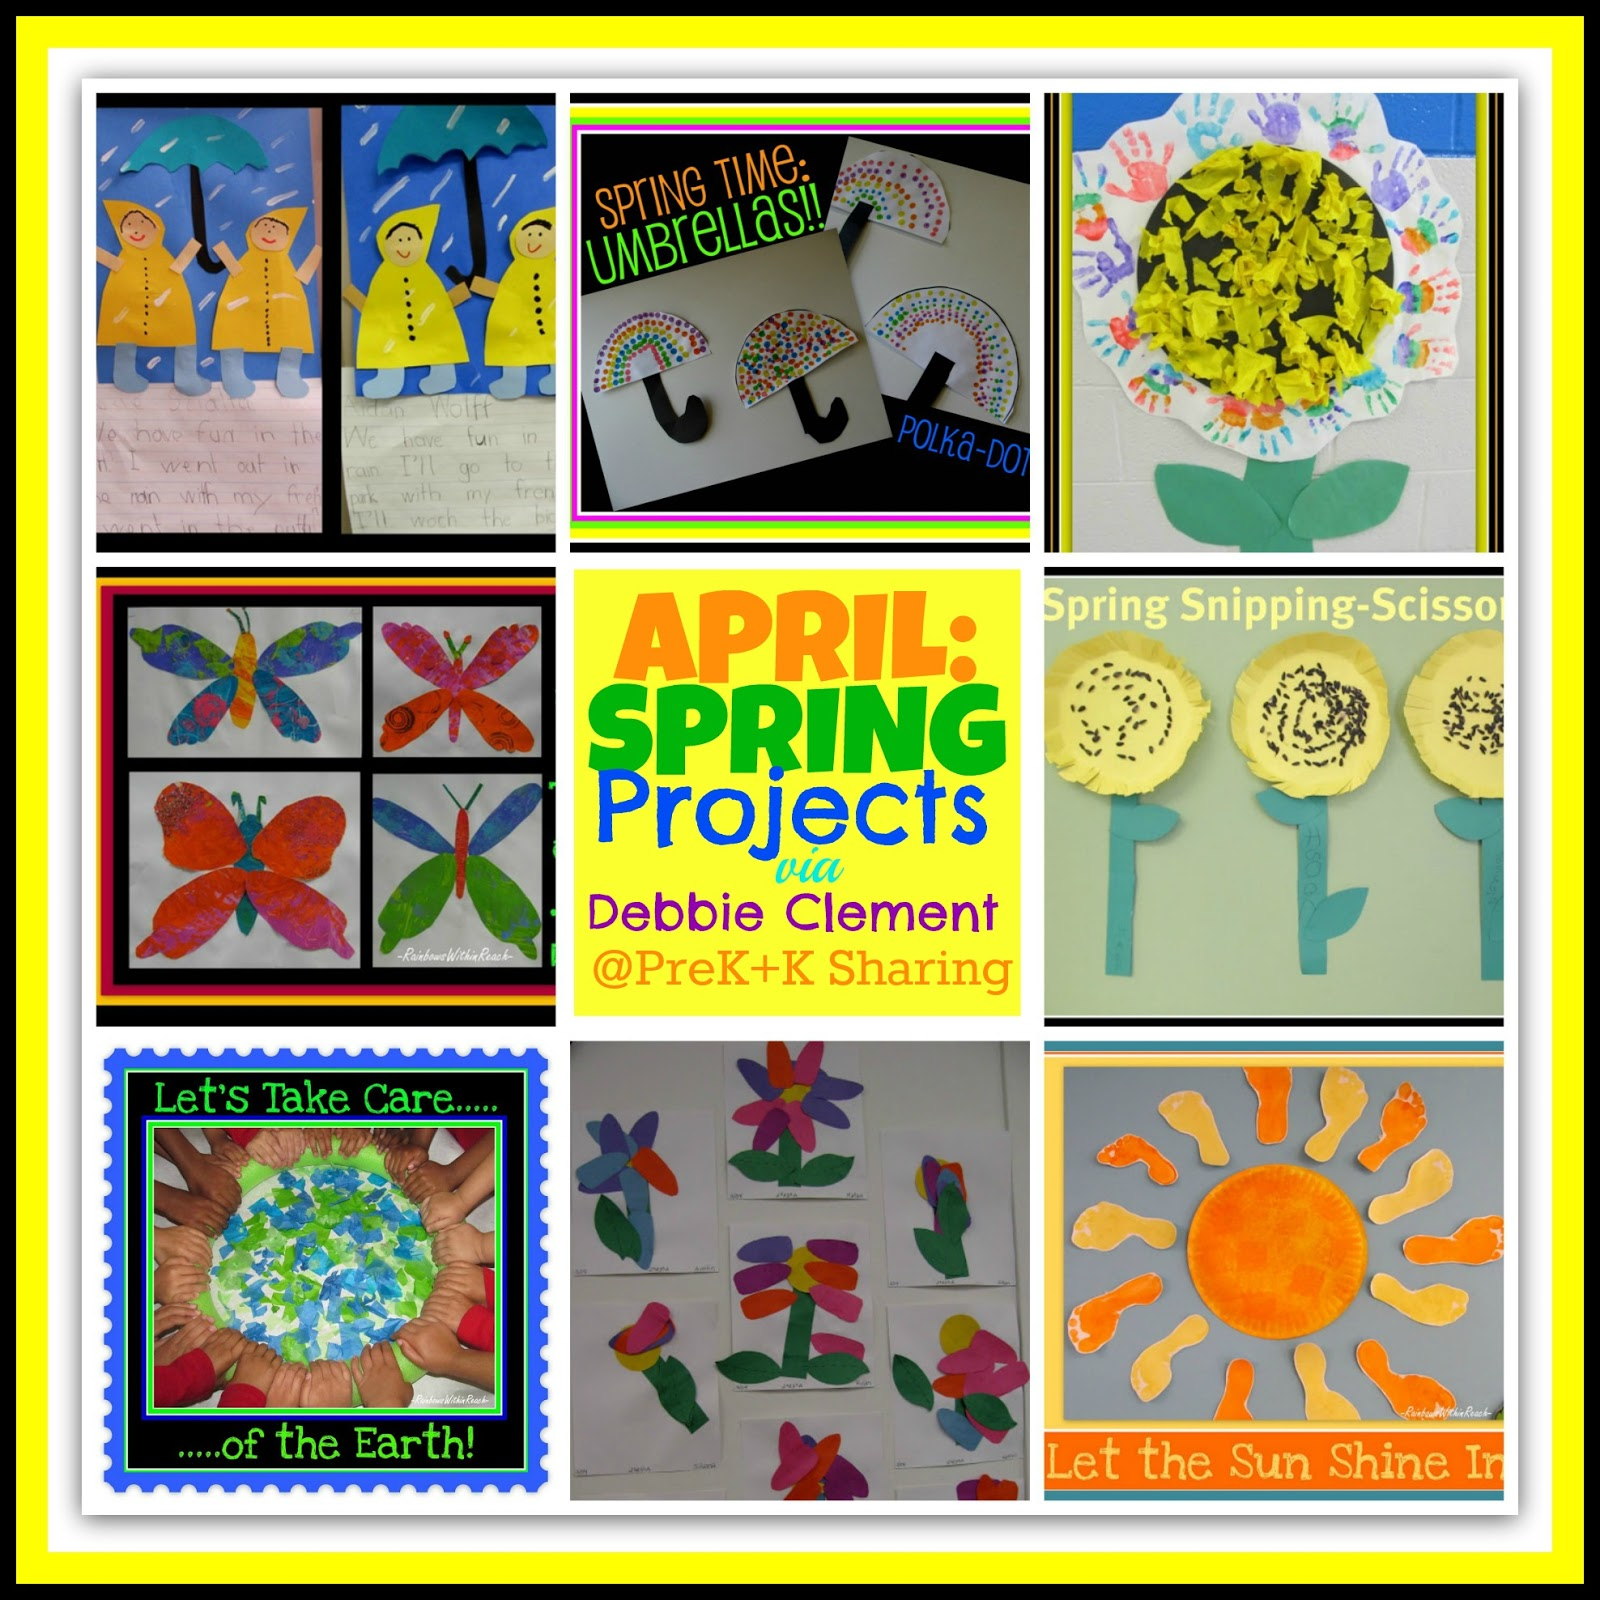 Featured 5 Spring Projects: Spring Art Lesson Plans 5th Grade